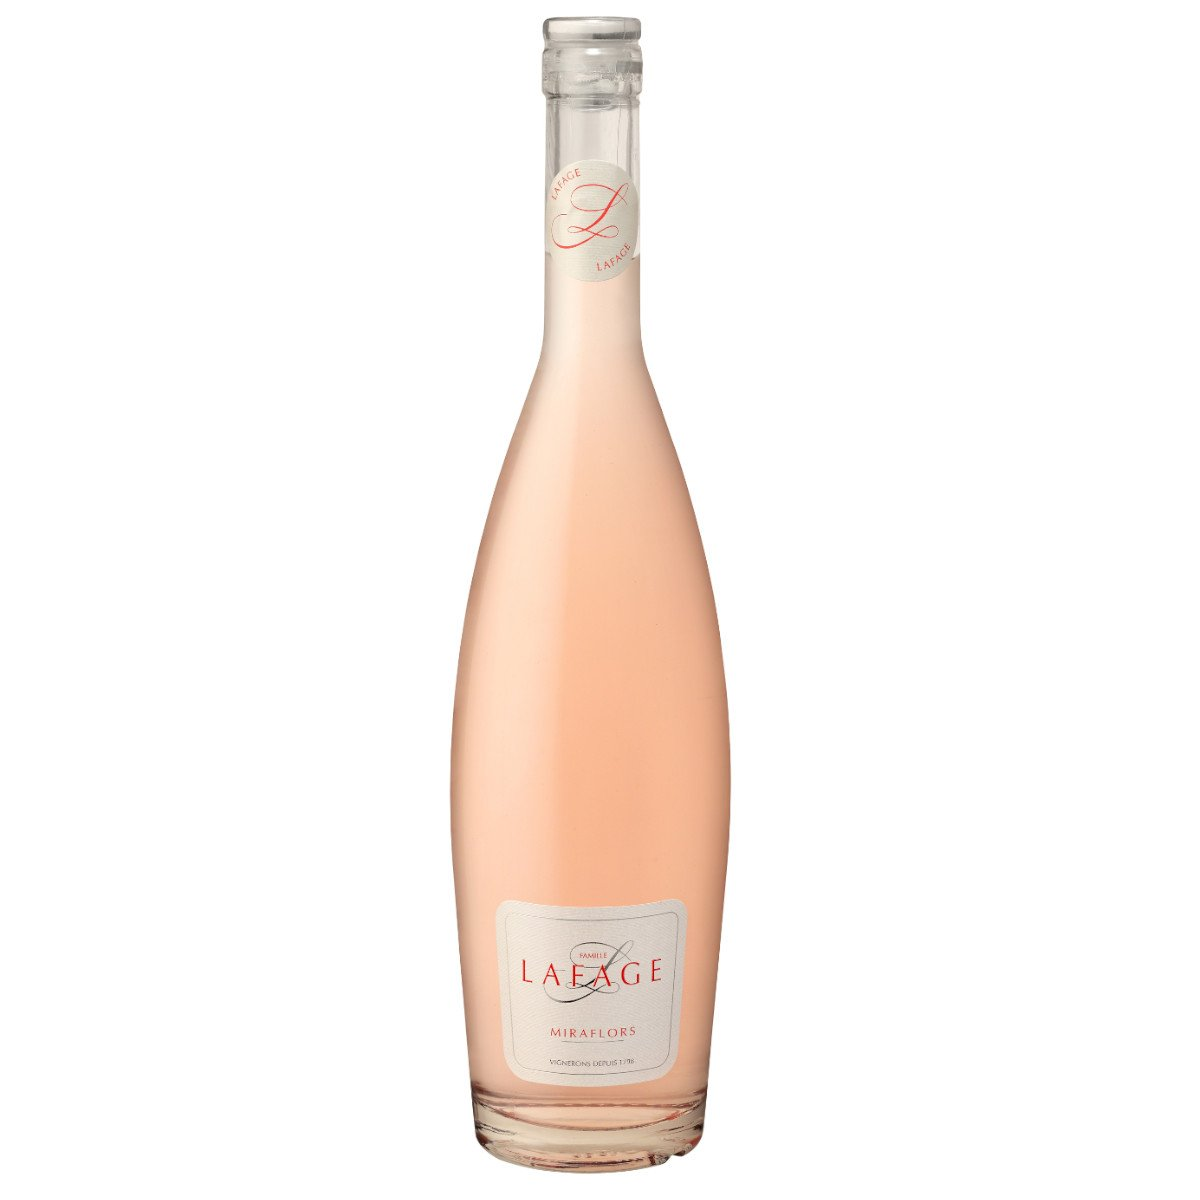 Domaine Lafage Miraflors Rose IGP Cotes Catalanes 2019 - Bodega Movil